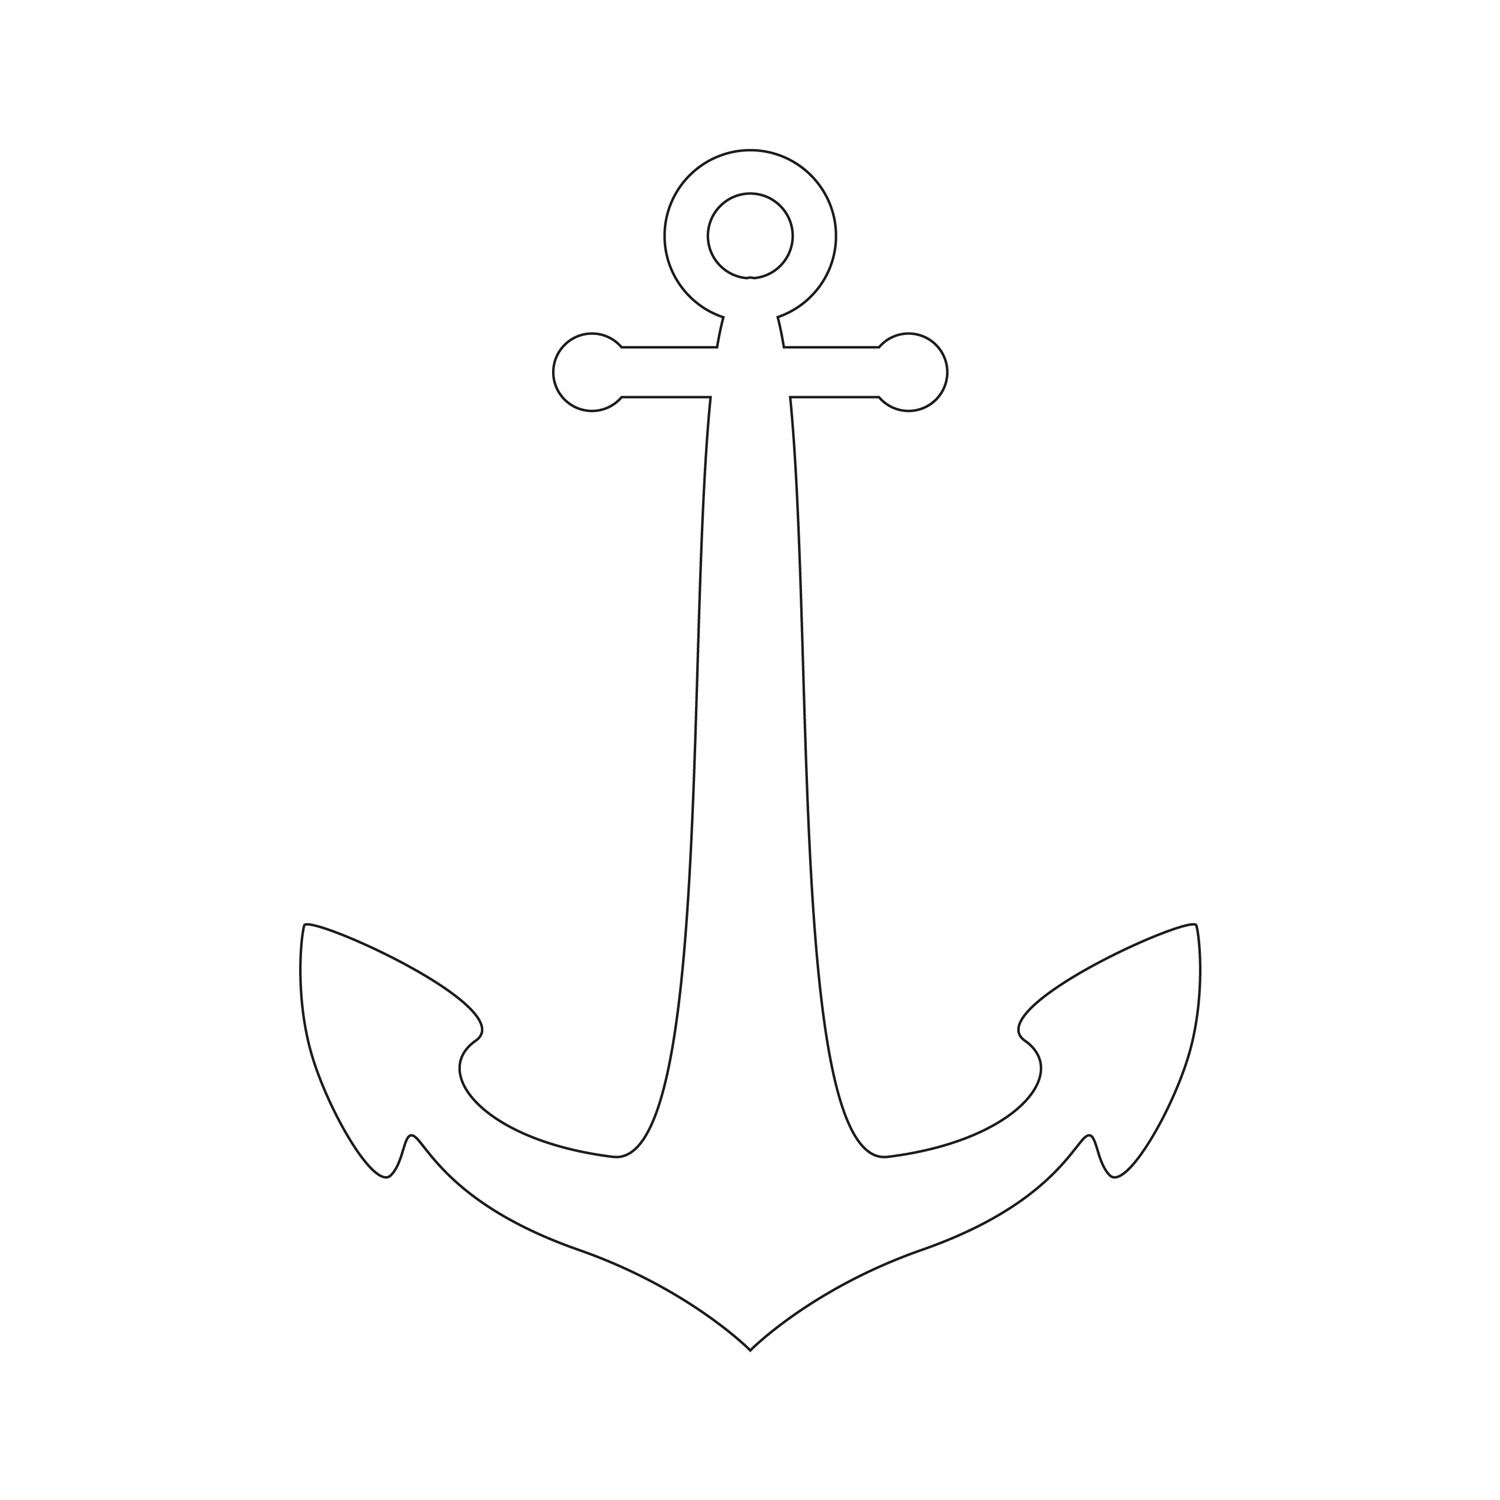 picture regarding Printable Anchor Template called Anchor Stencil Totally free Printable Stencil Templates Wooden